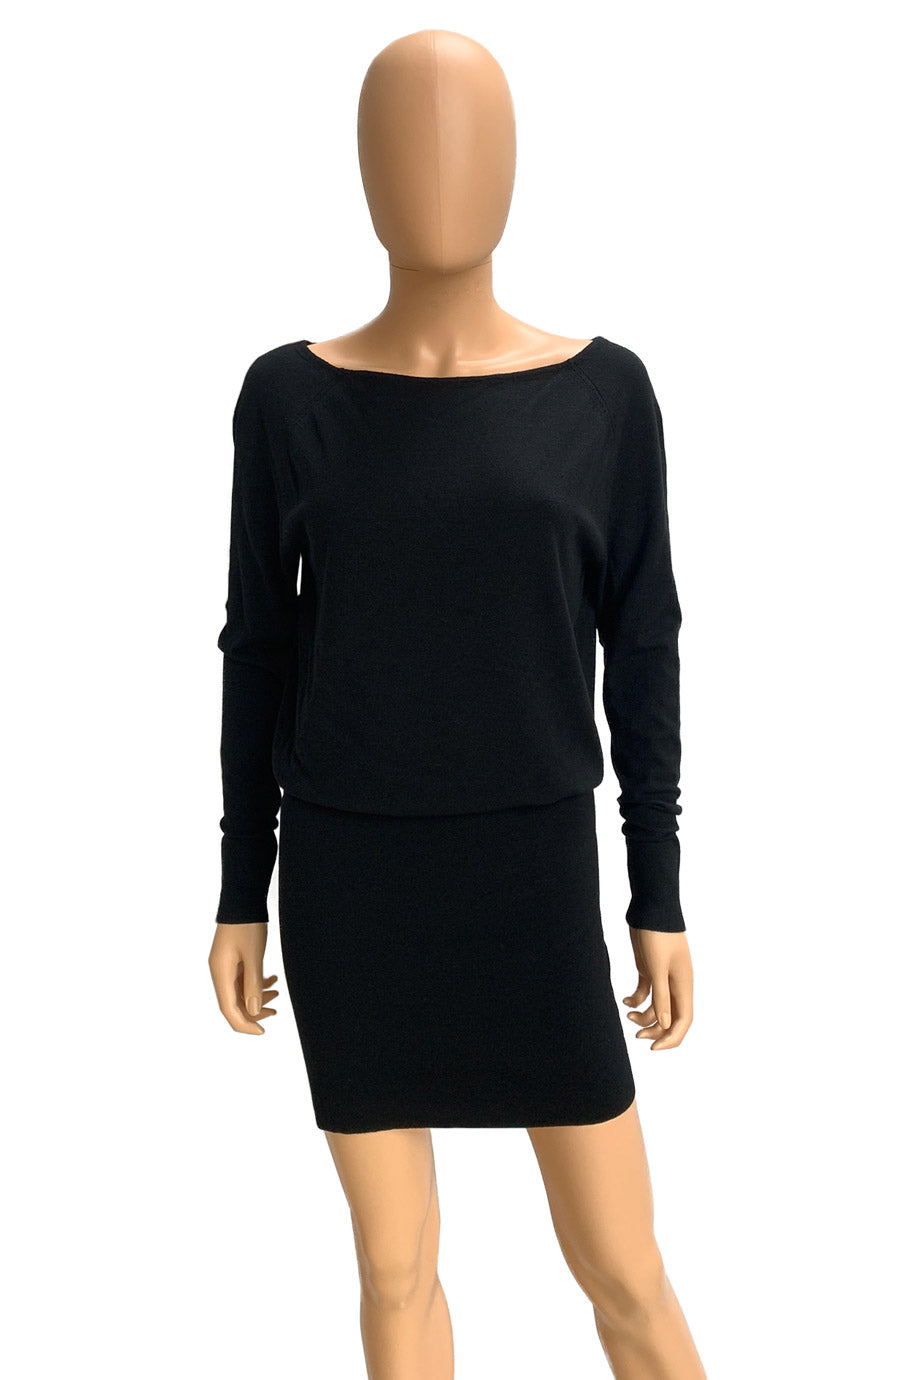 Donna Karan Black Stretch Viscose Knit Sweater Dress / Sz P-XS-Style Therapy